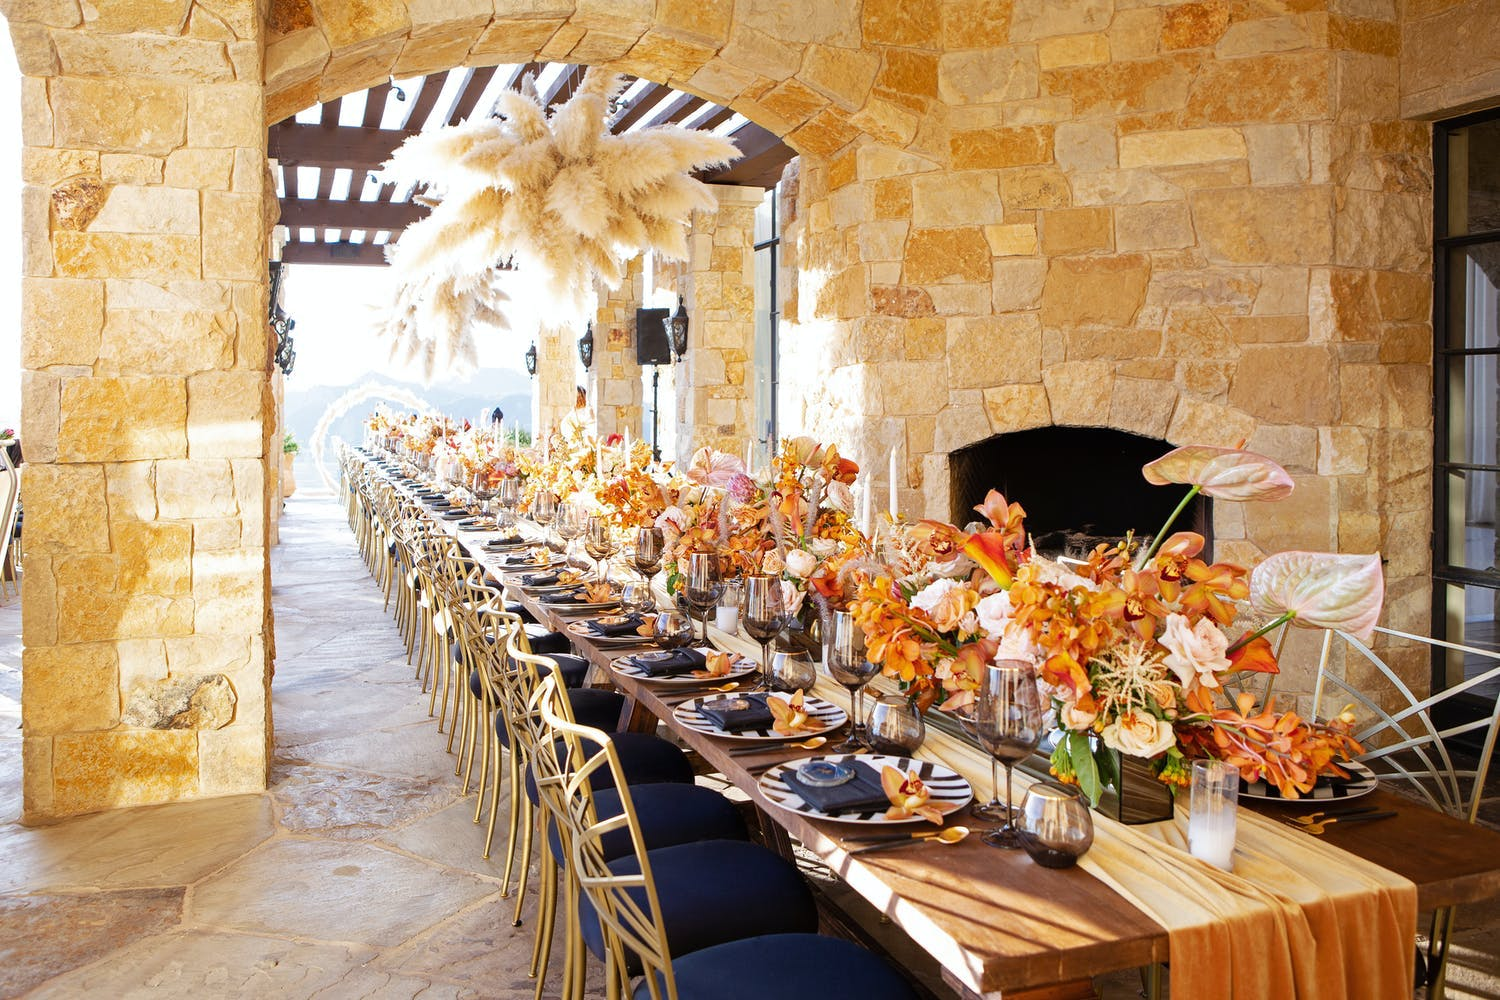 Fall wedding centerpieces of suspended pampas grass and orange flowers   PartySlate